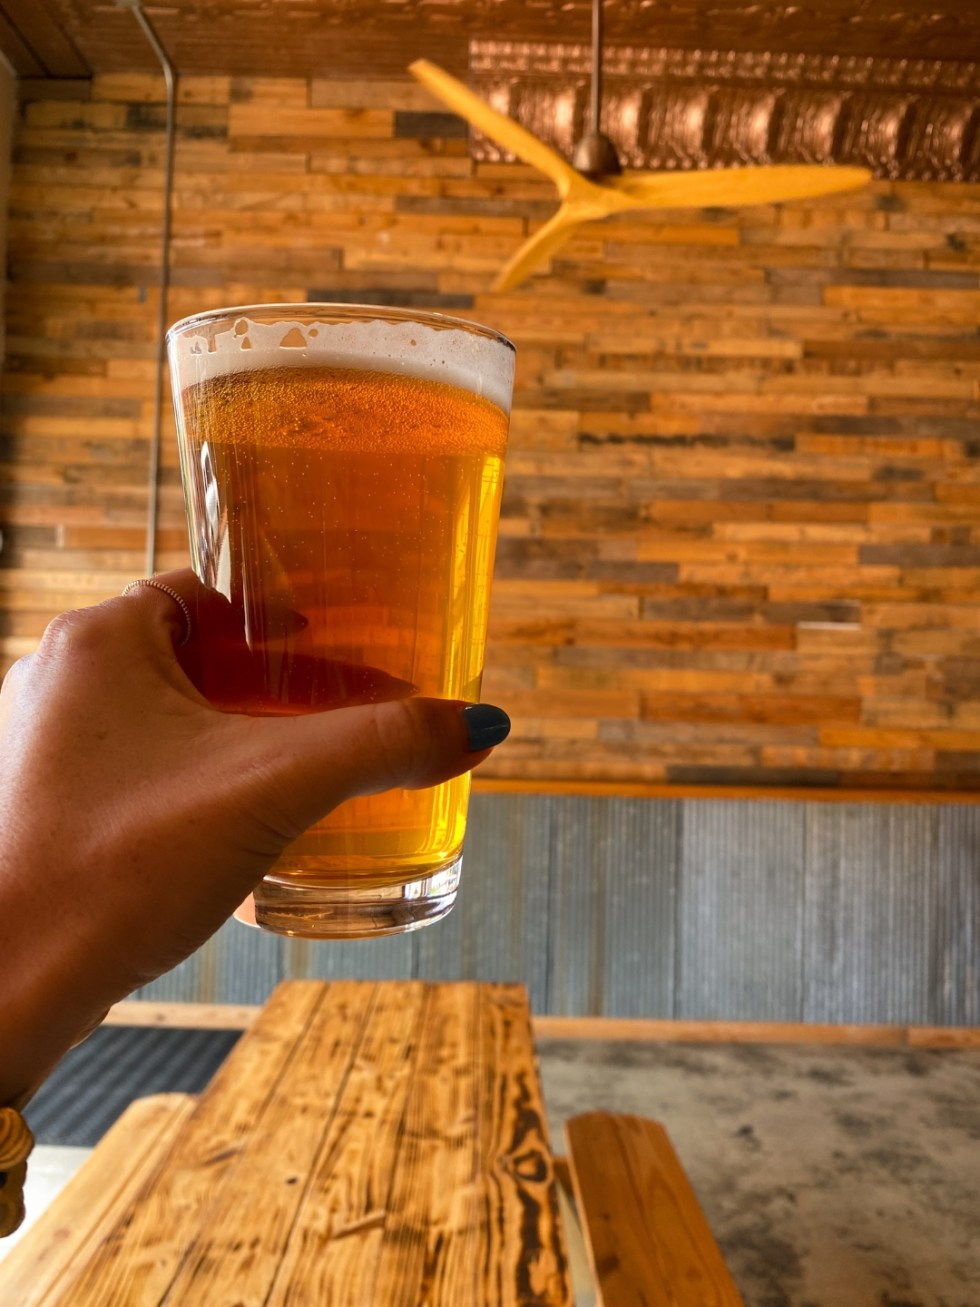 An Afternoon Trip to Franklin County, NC - I'm Fixin' To - @imfixintoblog | Franklin County NC by popular North Carolina travel blog, I'm Fixin' To: image of a woman holding a pint glass of beer.